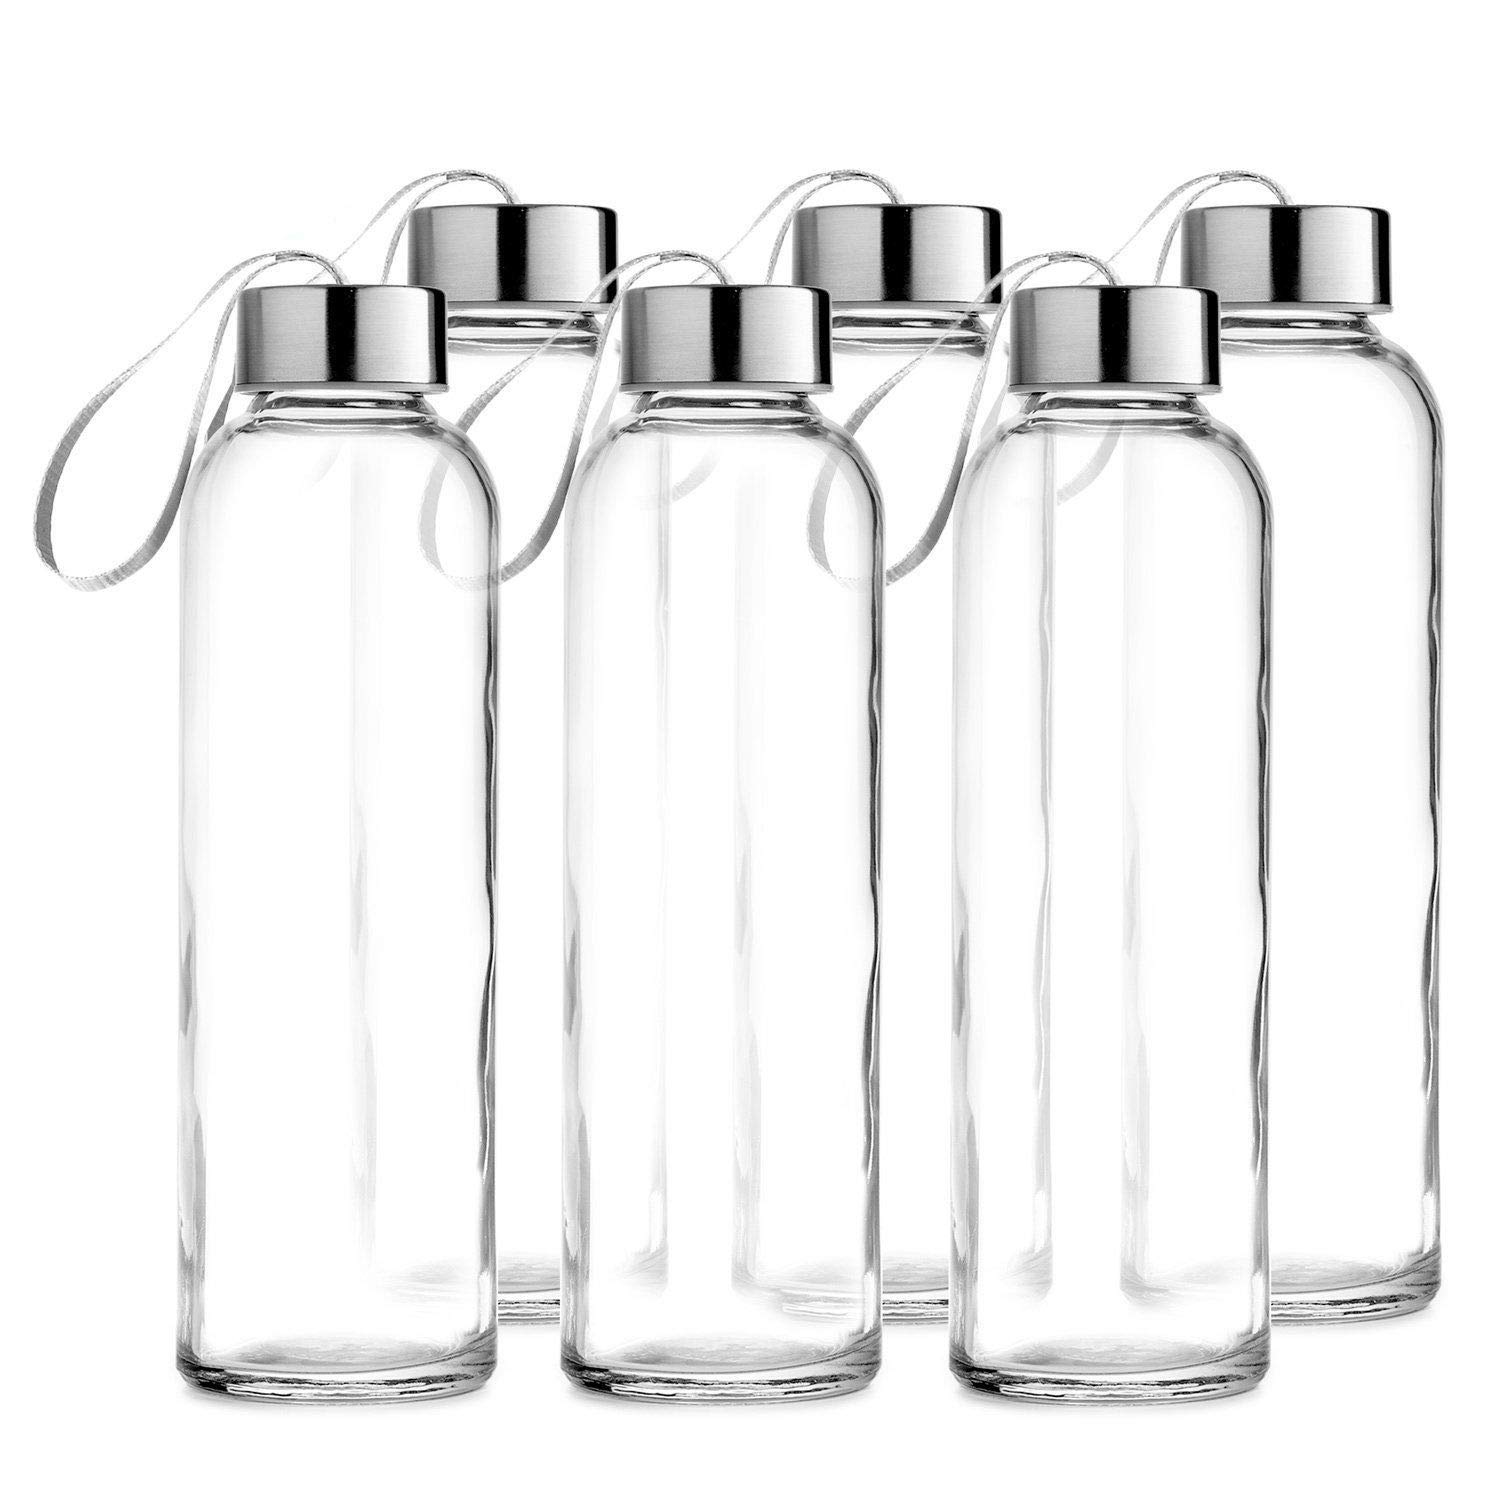 Chef's Star Glass Water Bottle 6 Pack 18oz Bottles for Beverages and Juicer Use Stainless Steel Leak Proof Caps with Carrying Loop - Including 6 Black Nylon Protection Sleeve by Chef's Star